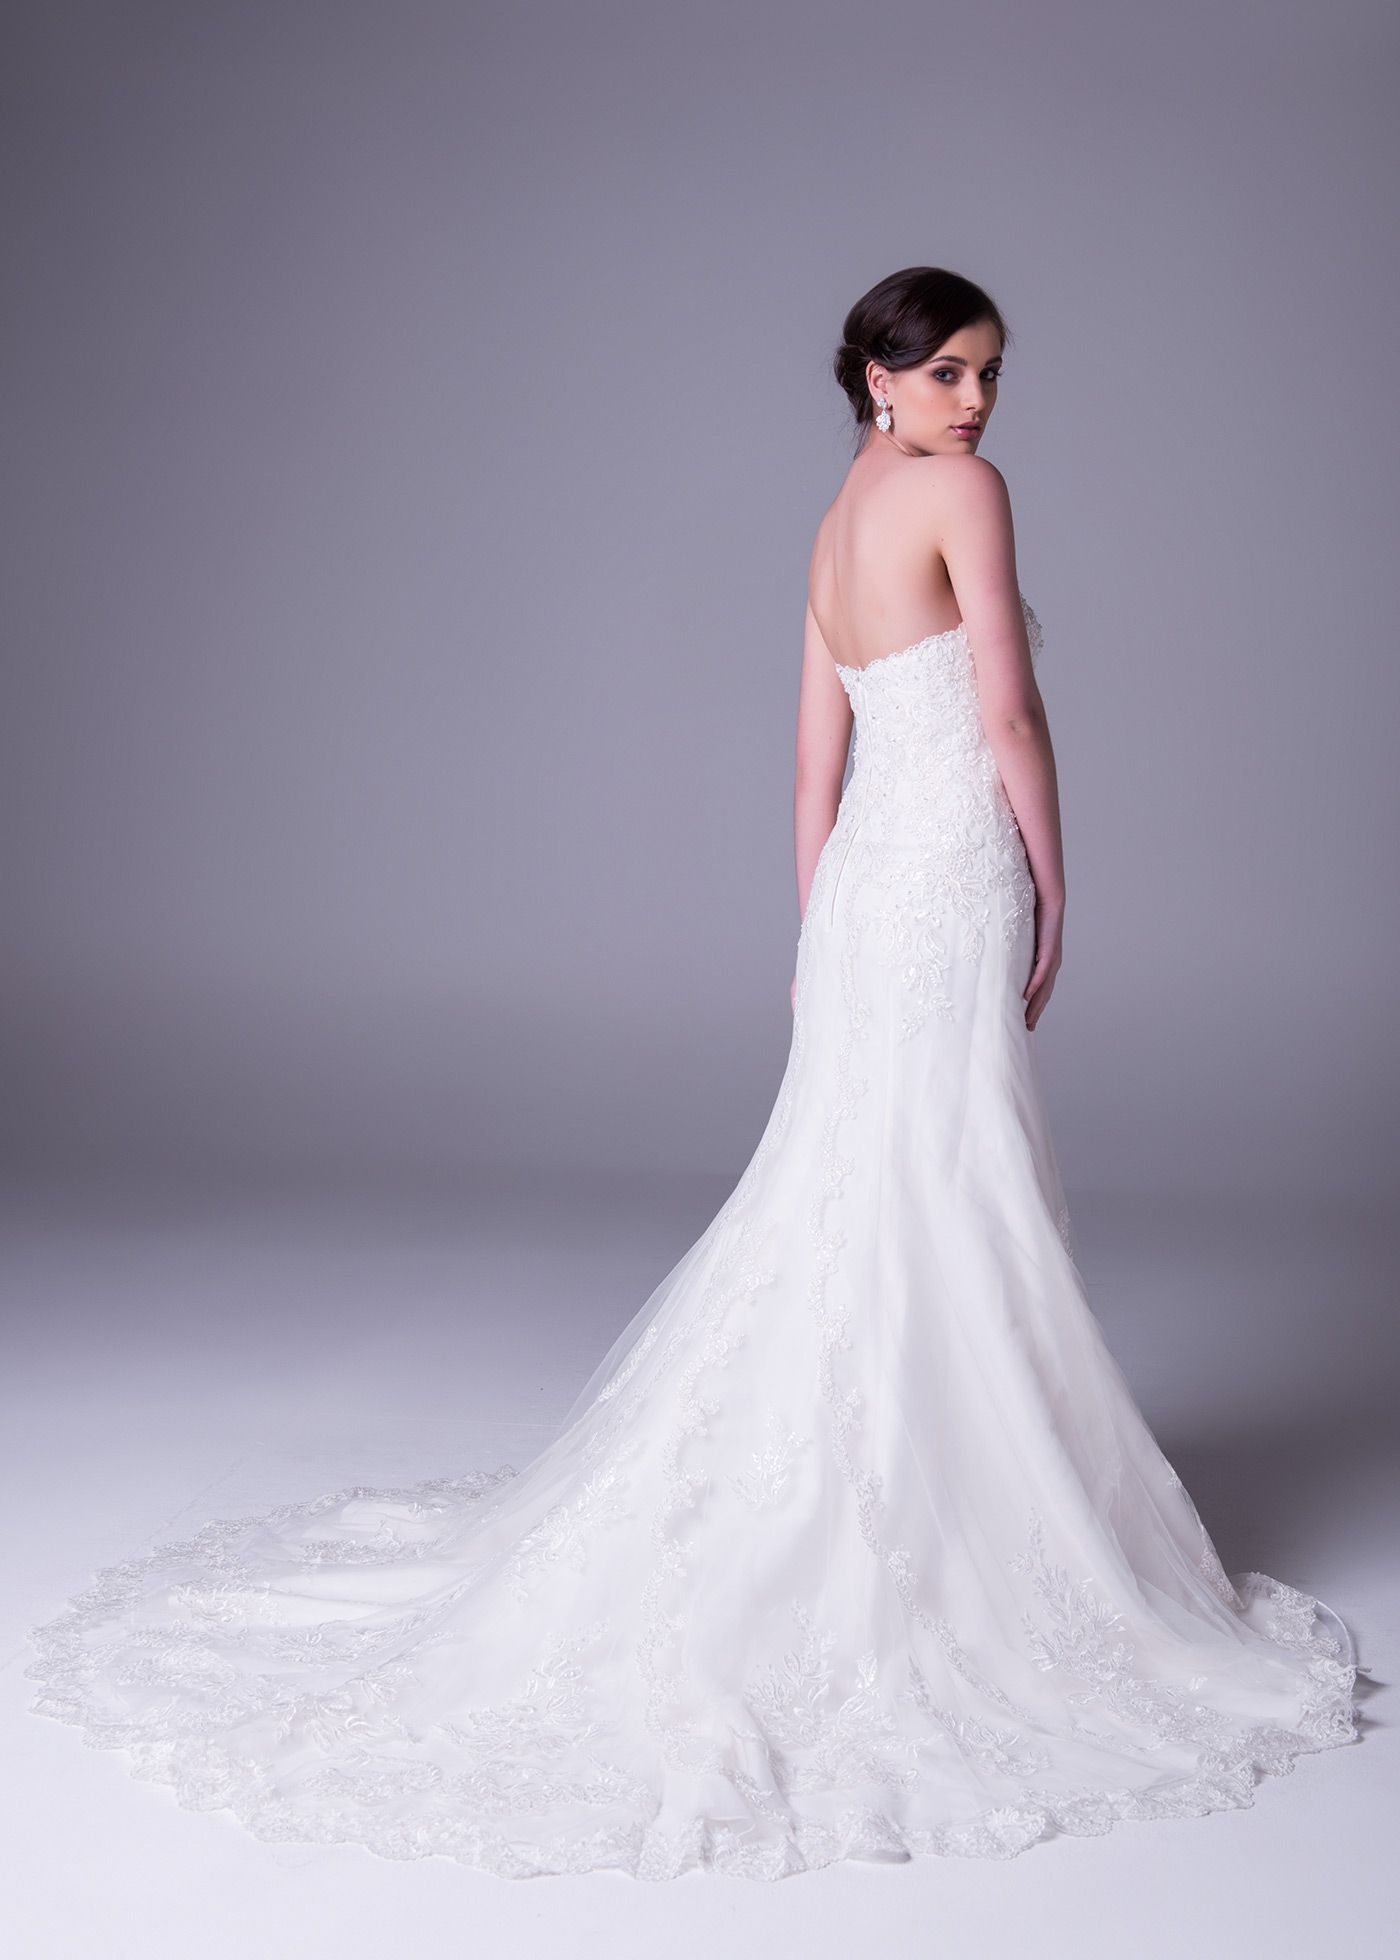 Click To Book A Free Fitting In This Strapless Sheath Lace Wedding Dress Style >> Wpd17650: Clic Lace Strapless Wedding Dresses At Websimilar.org